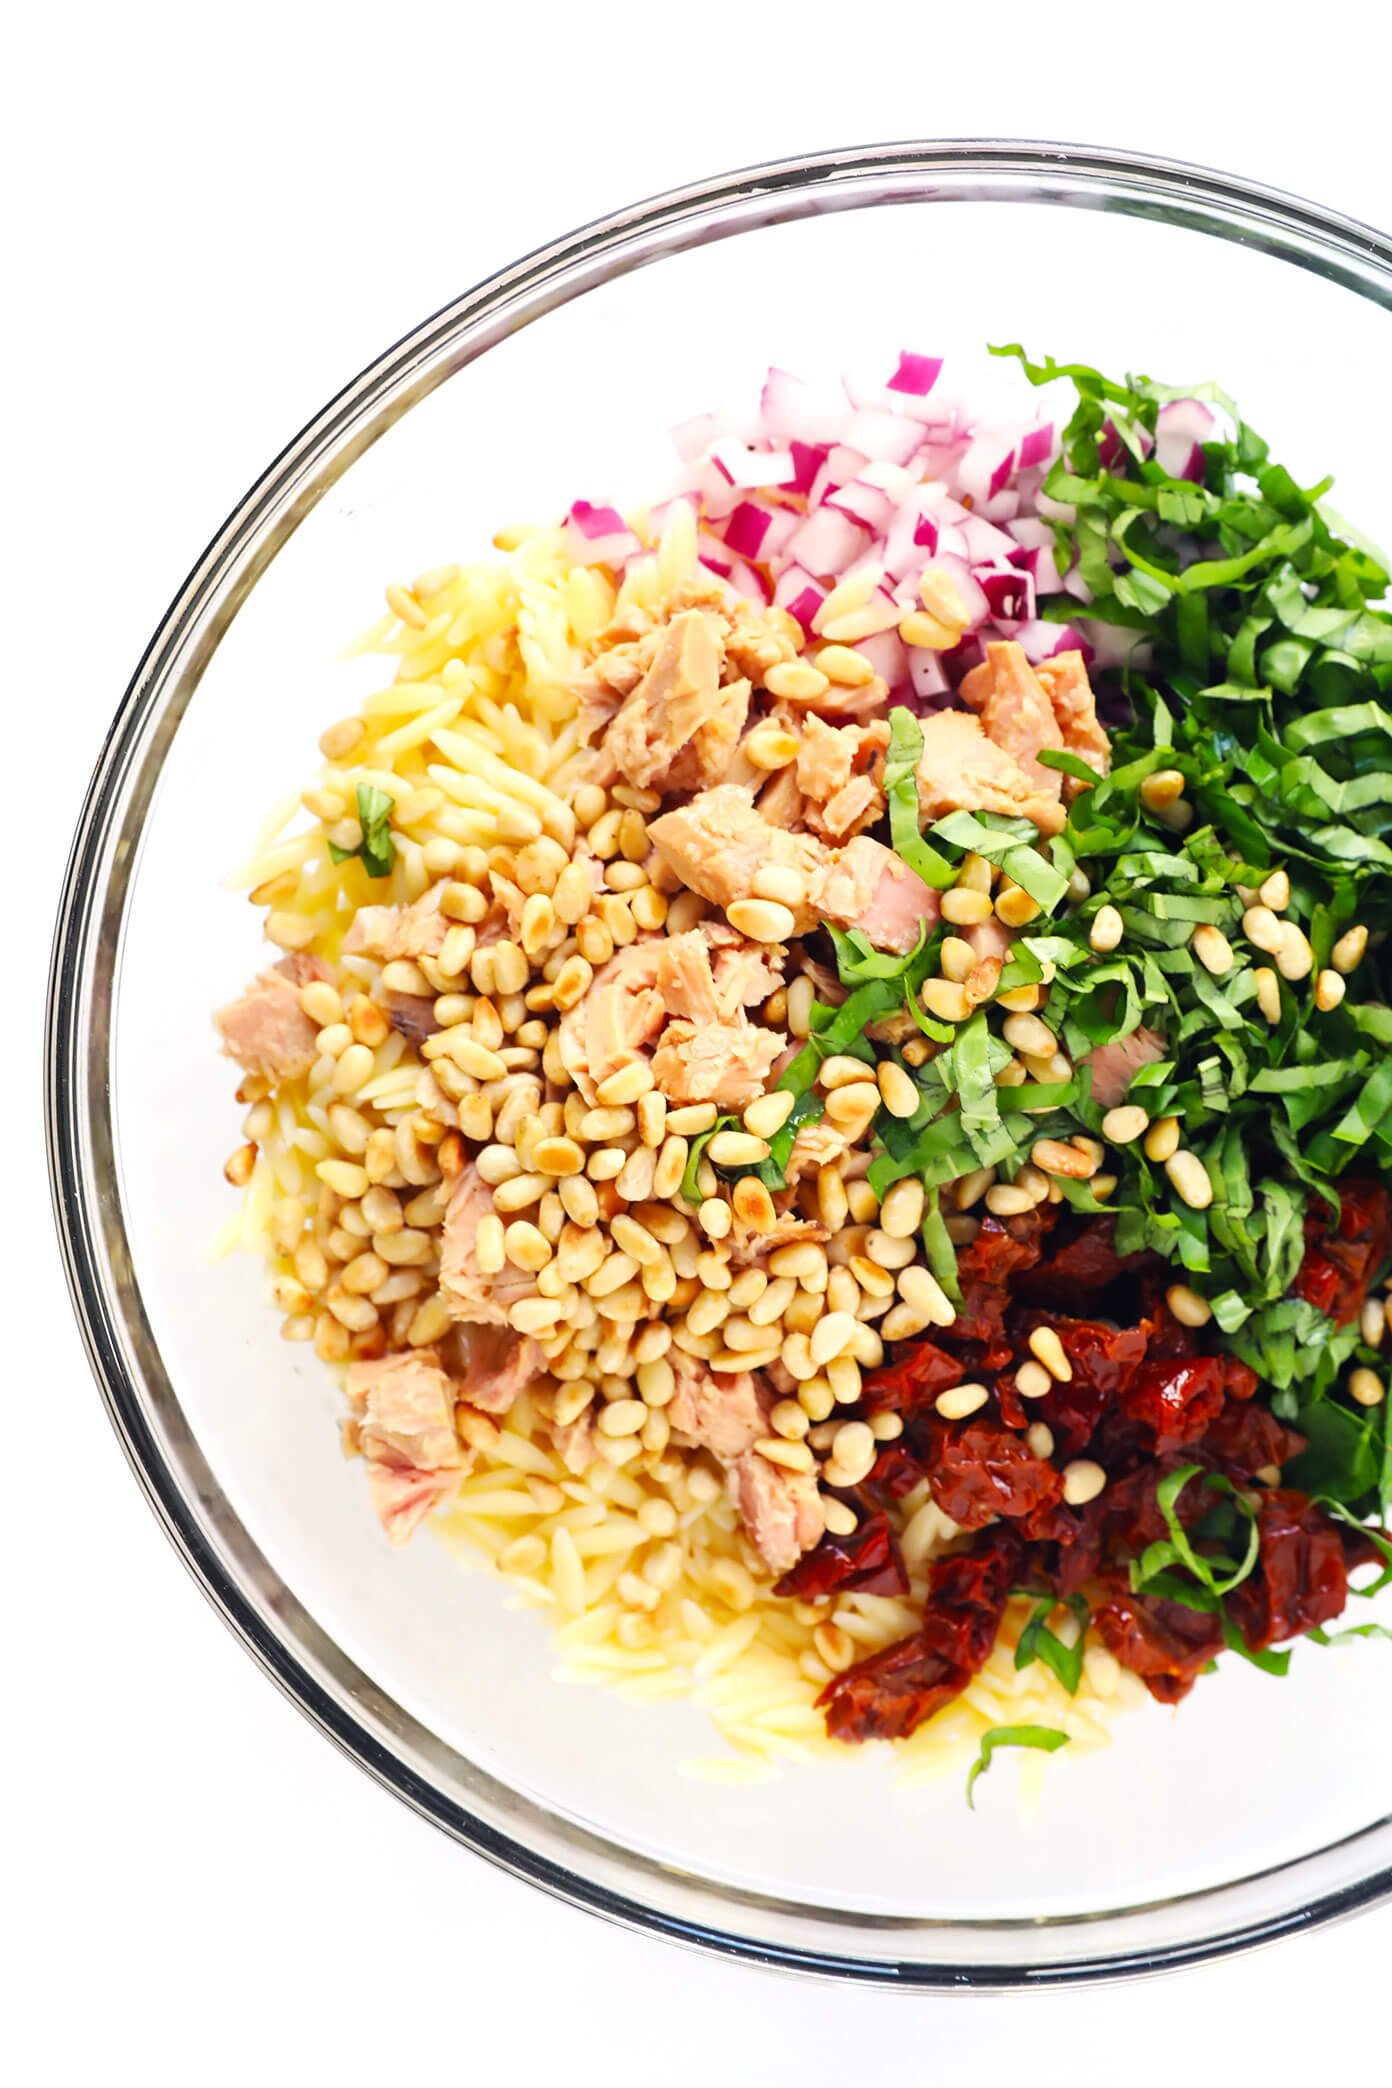 Italian Orzo Tuna Salad Ingredients